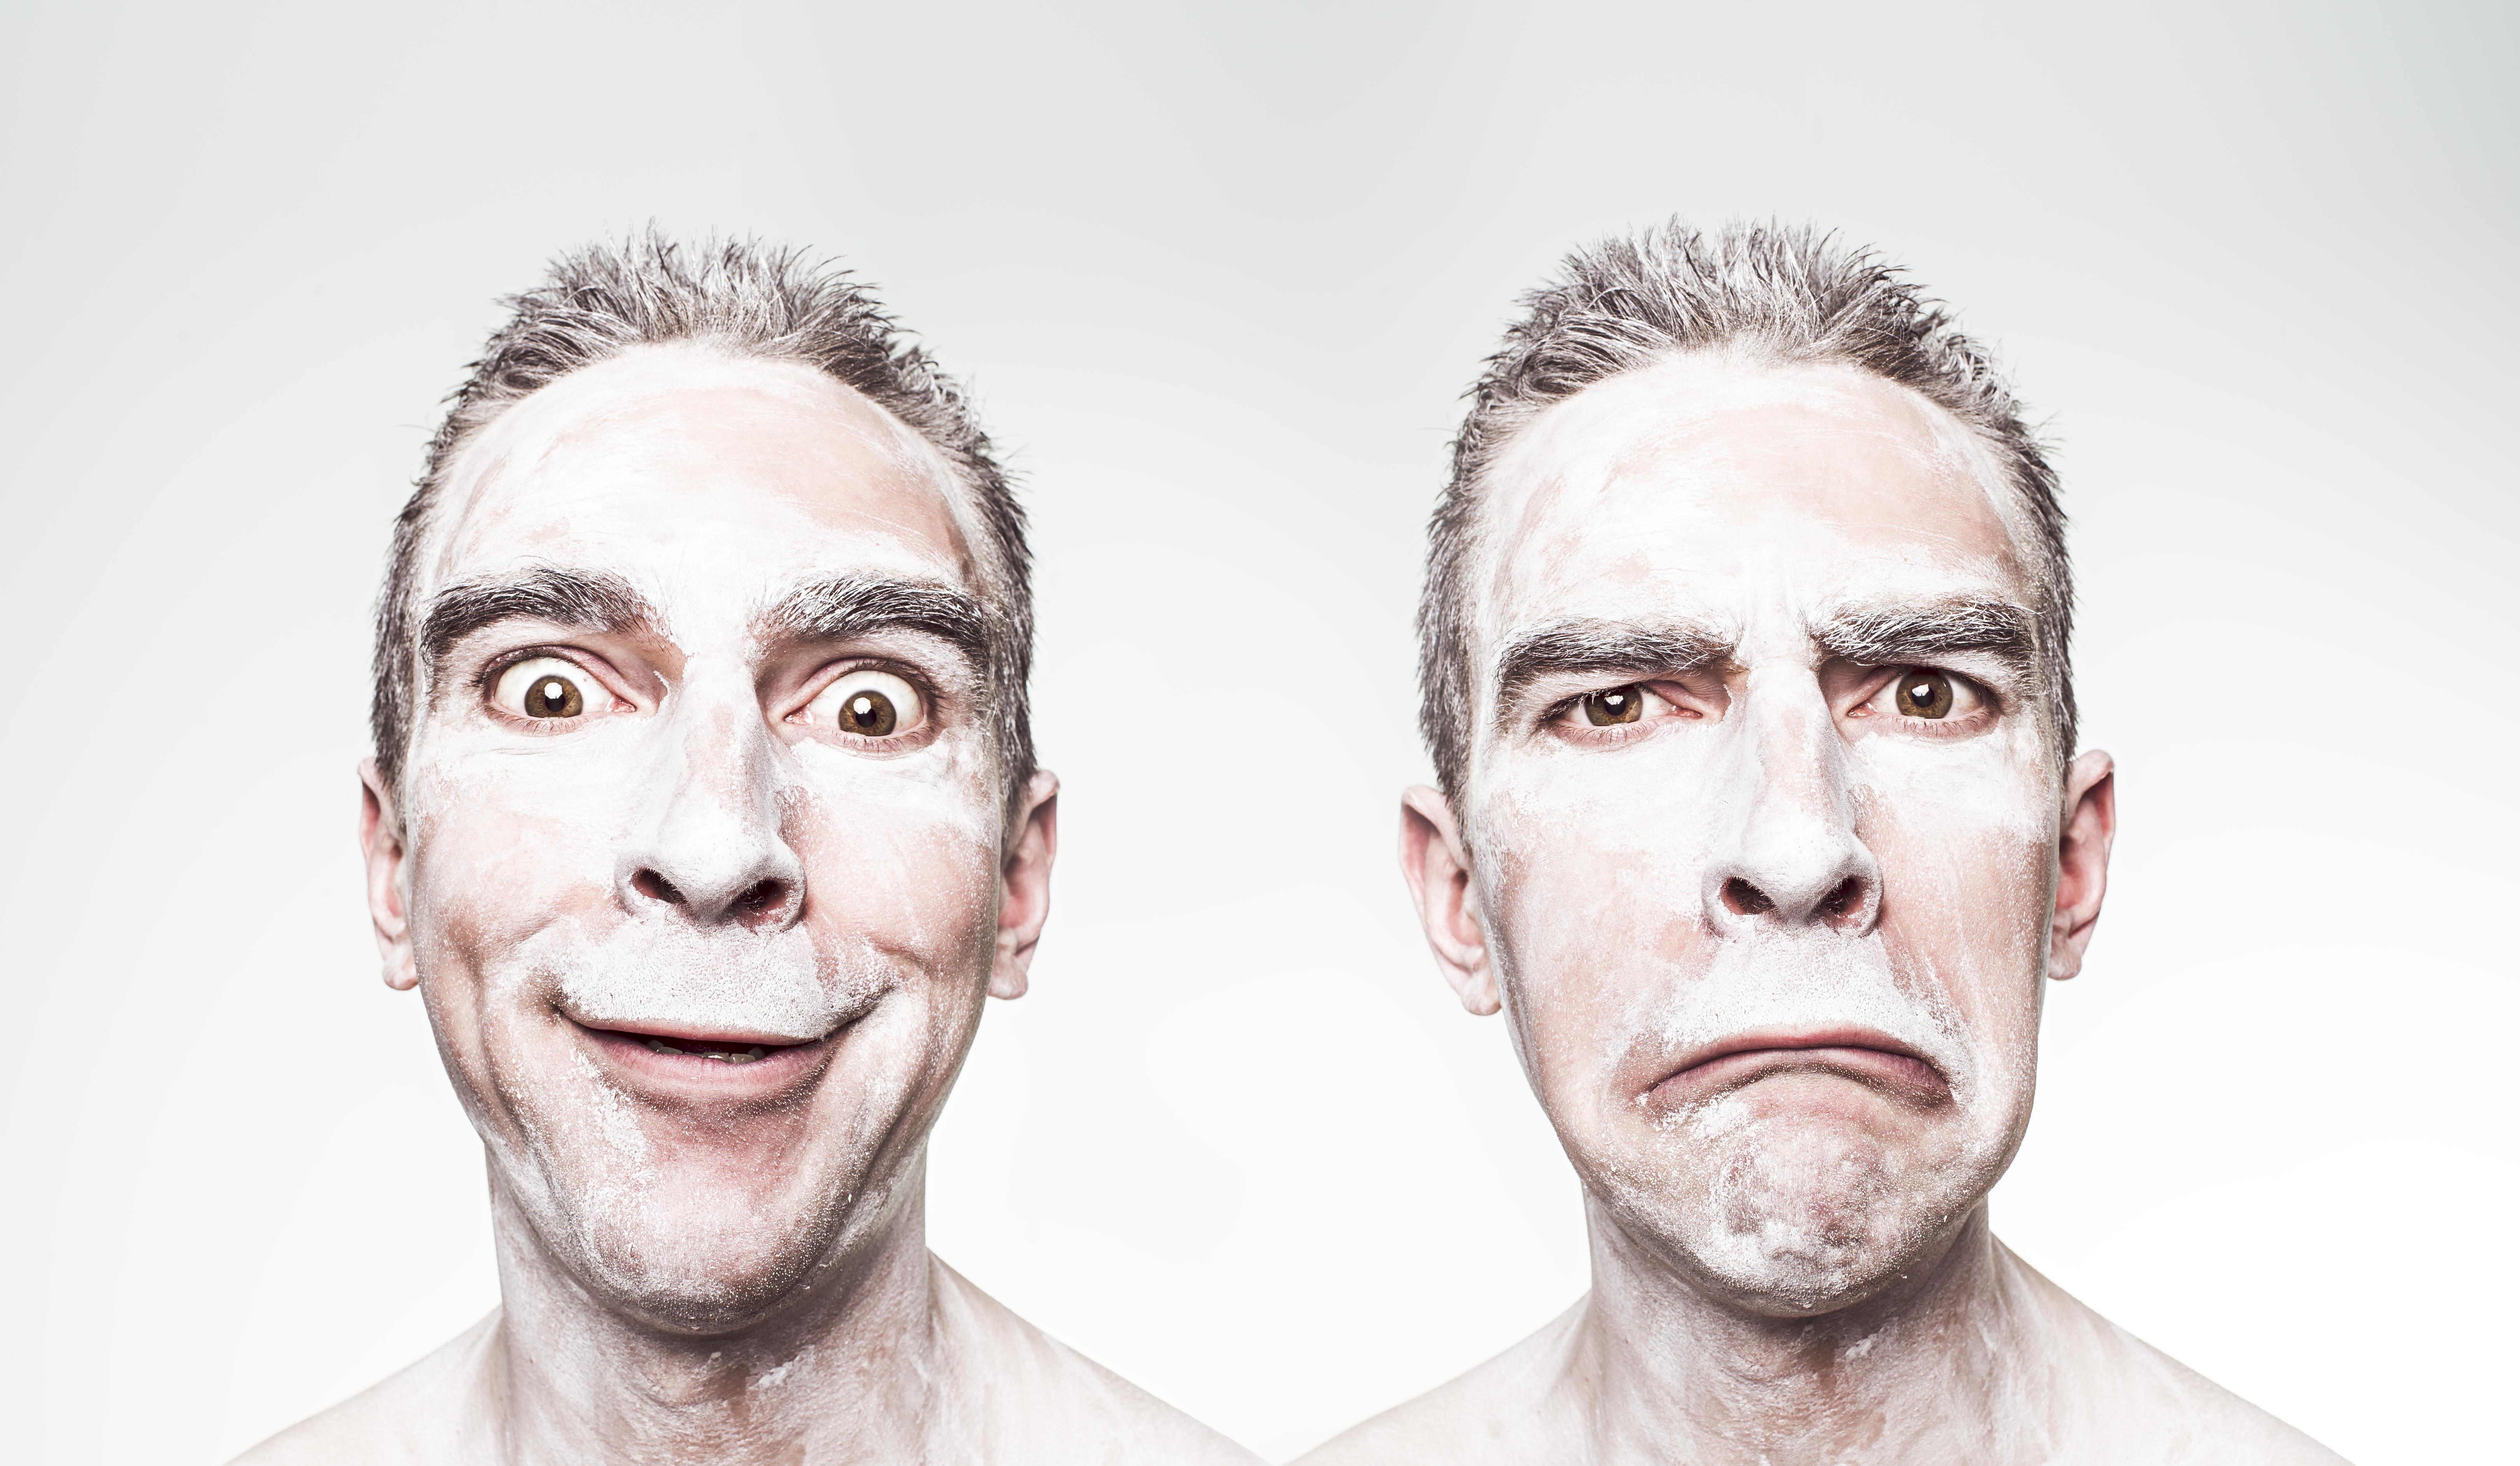 faces with emotions image free stock photo public domain photo